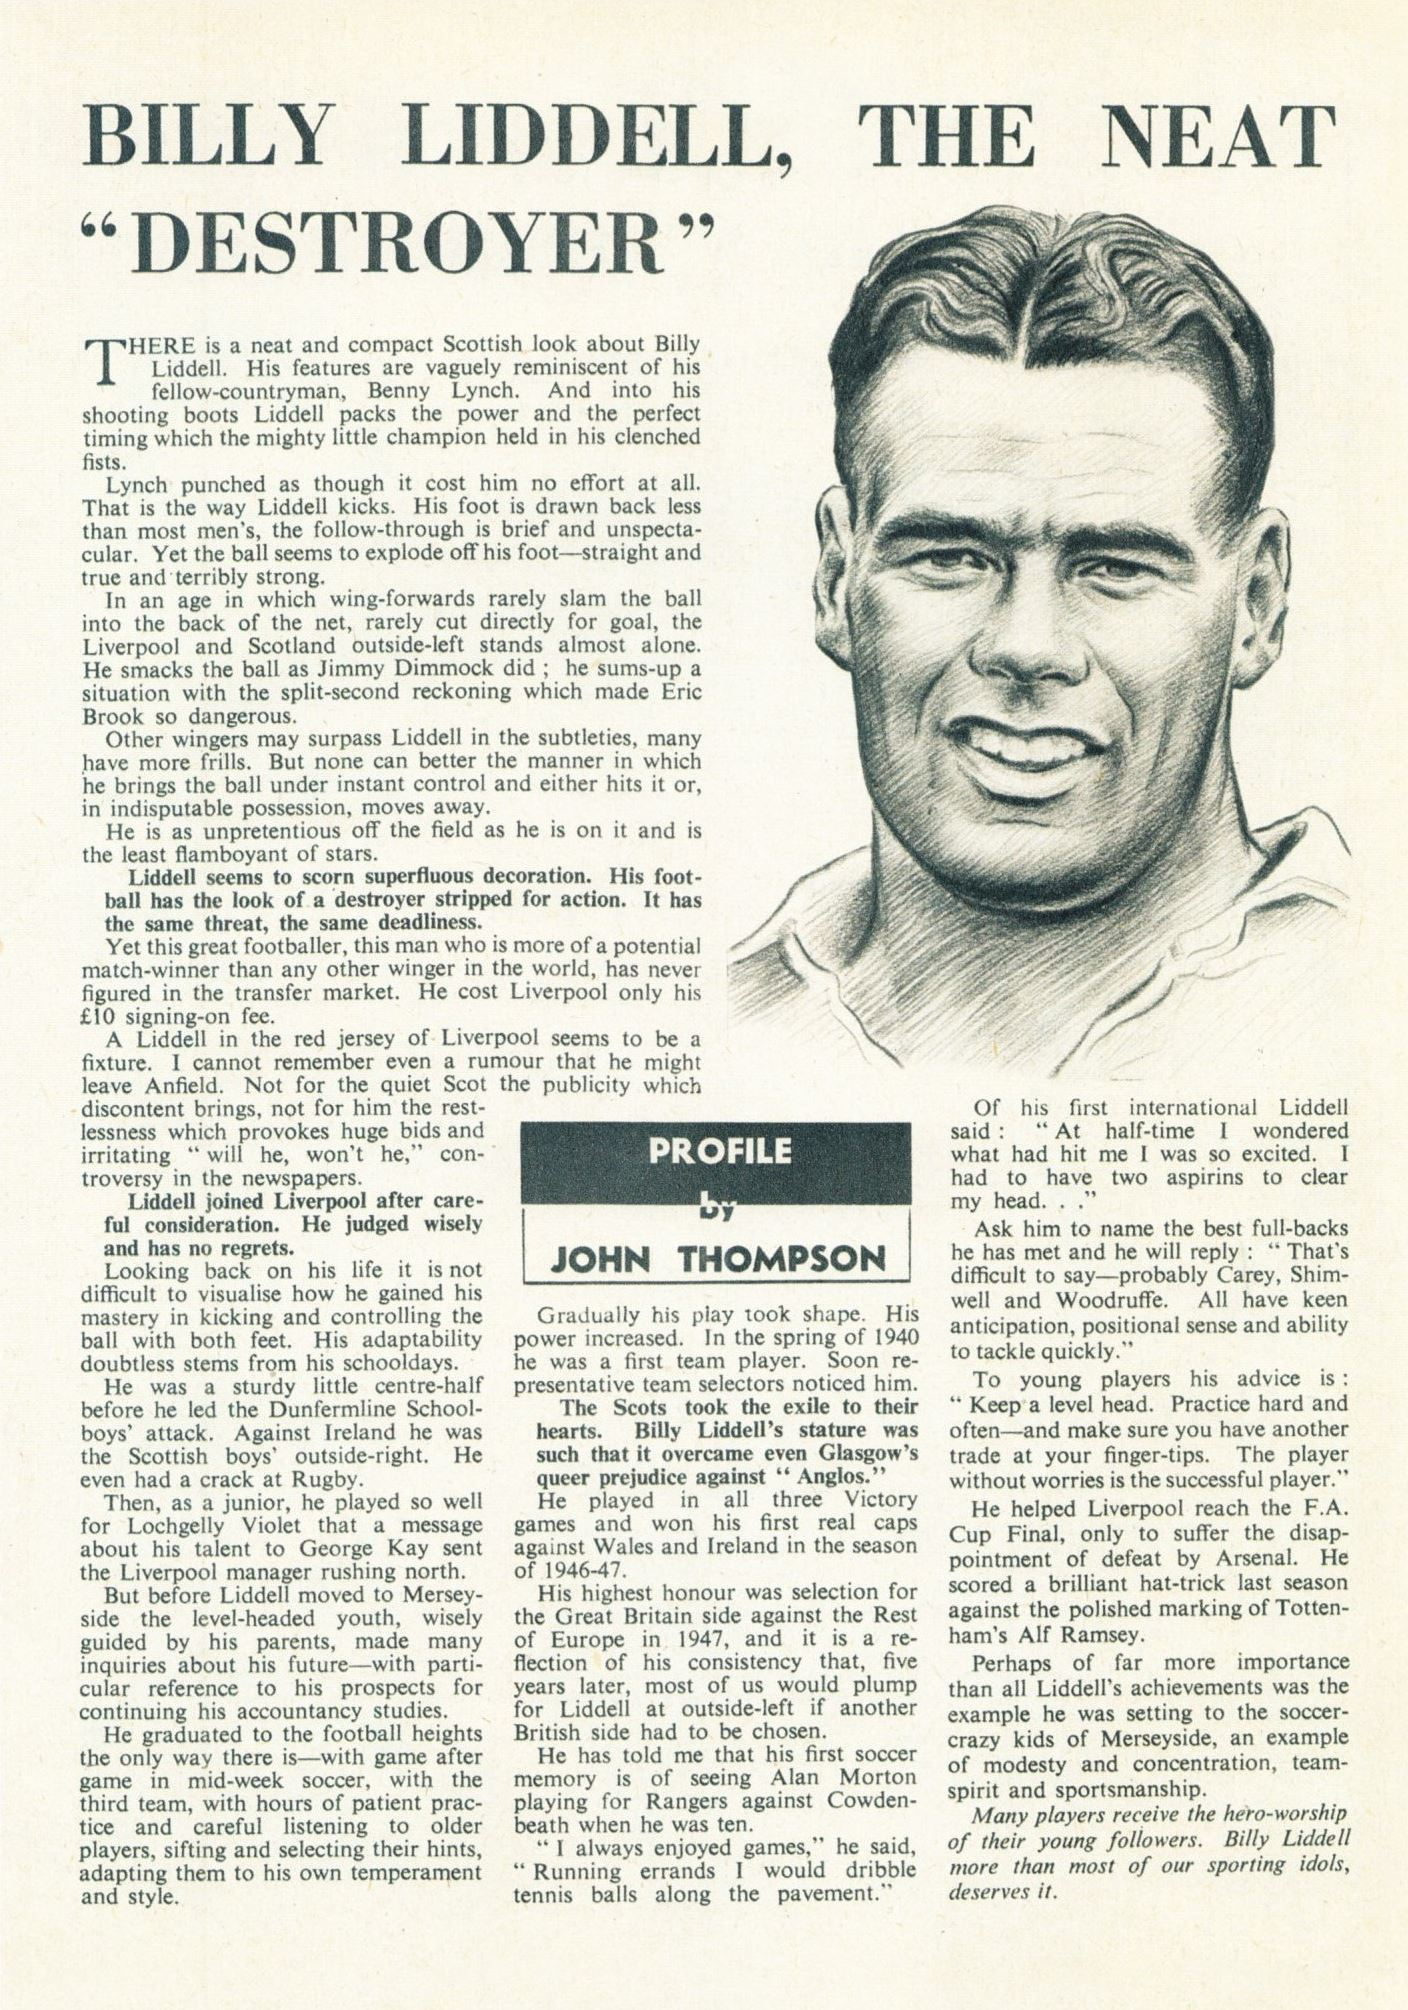 The neat destroyer - Football Monthly November 1952